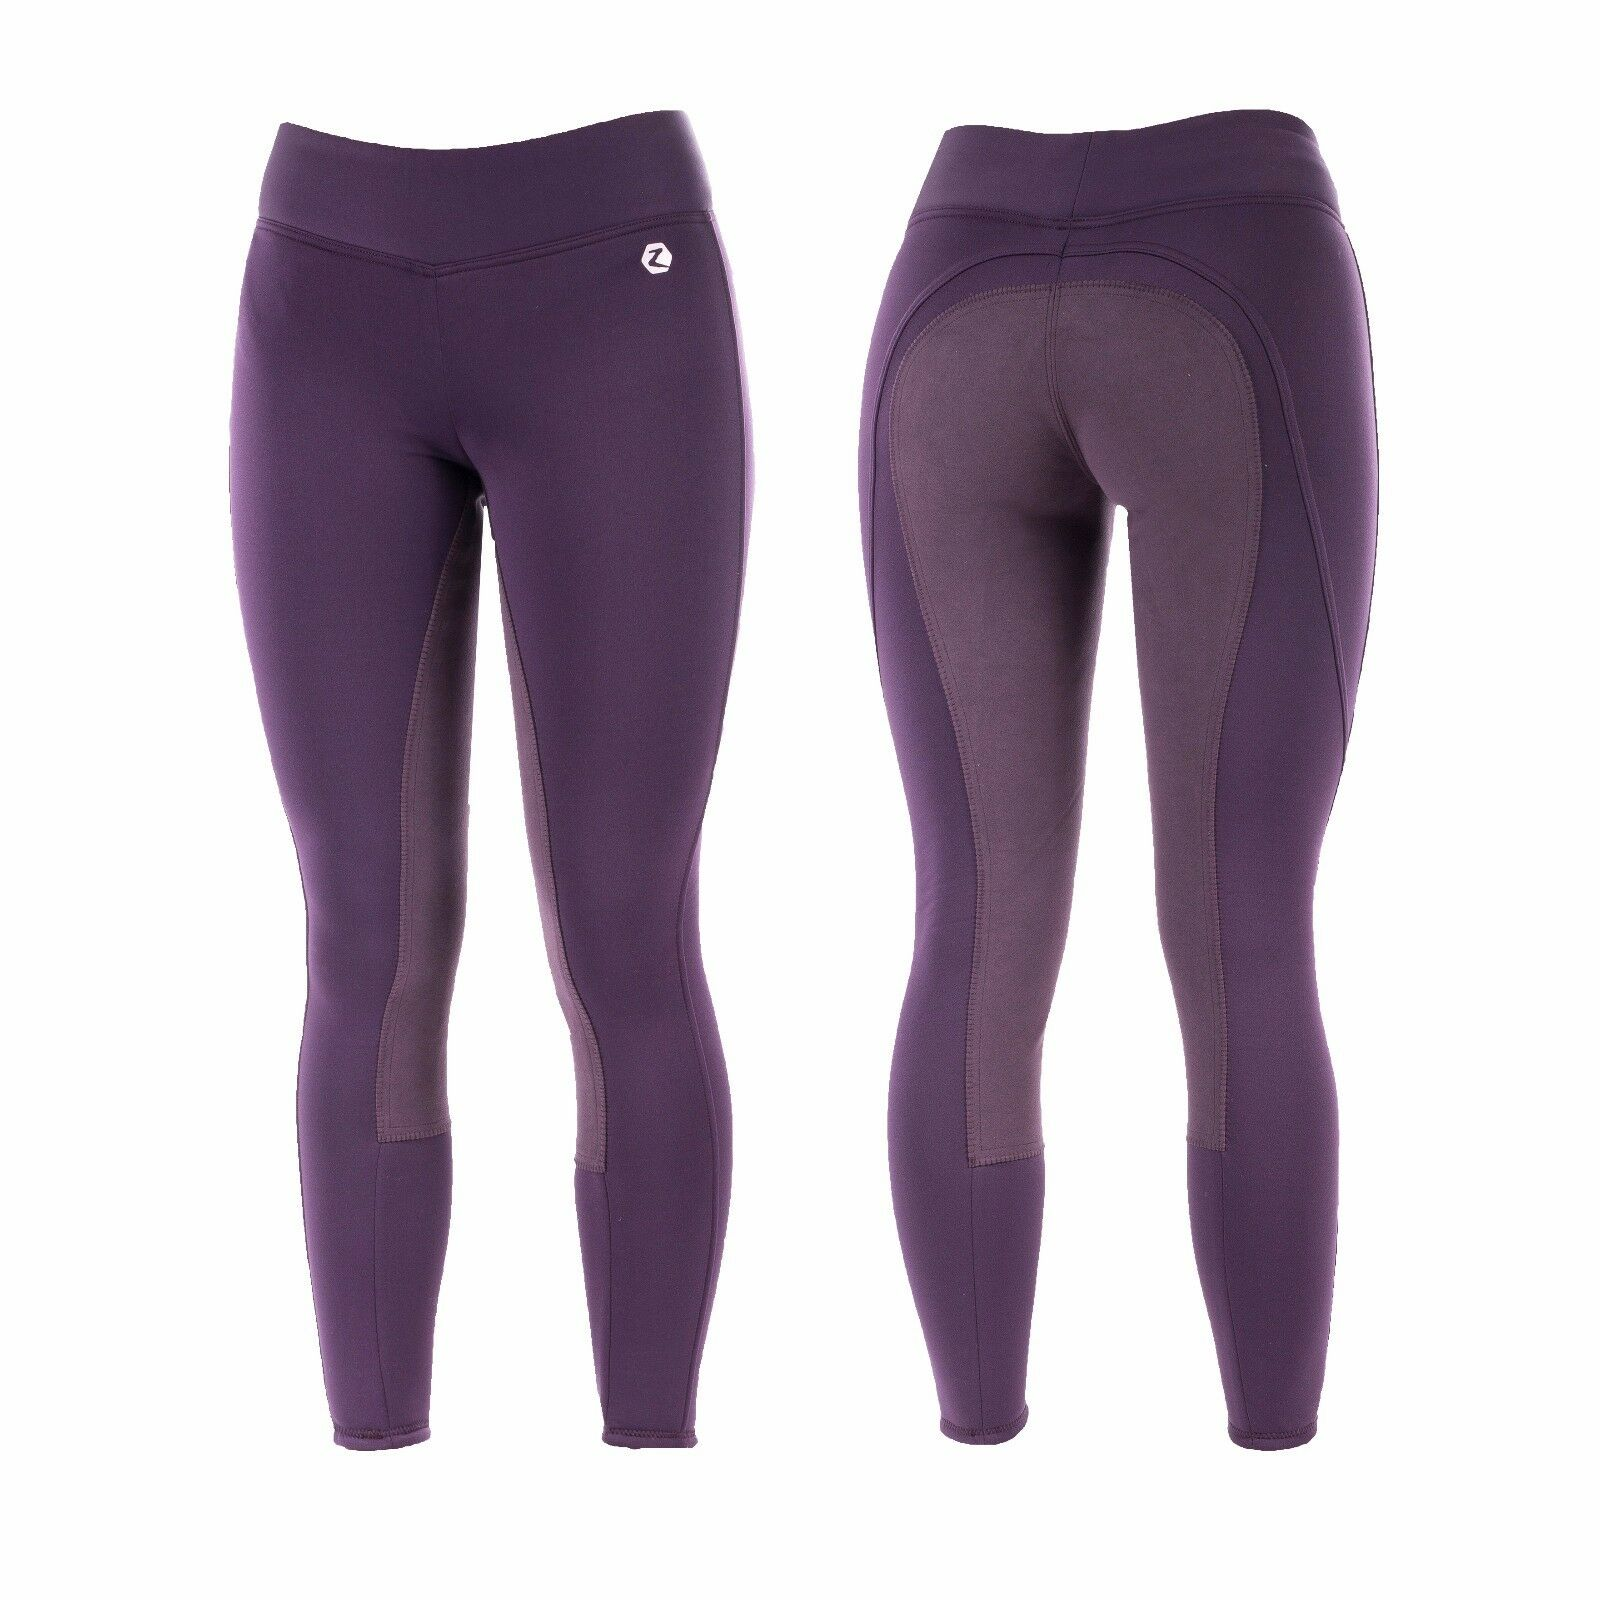 Horze Active Winter Full Seat Tights in Purple